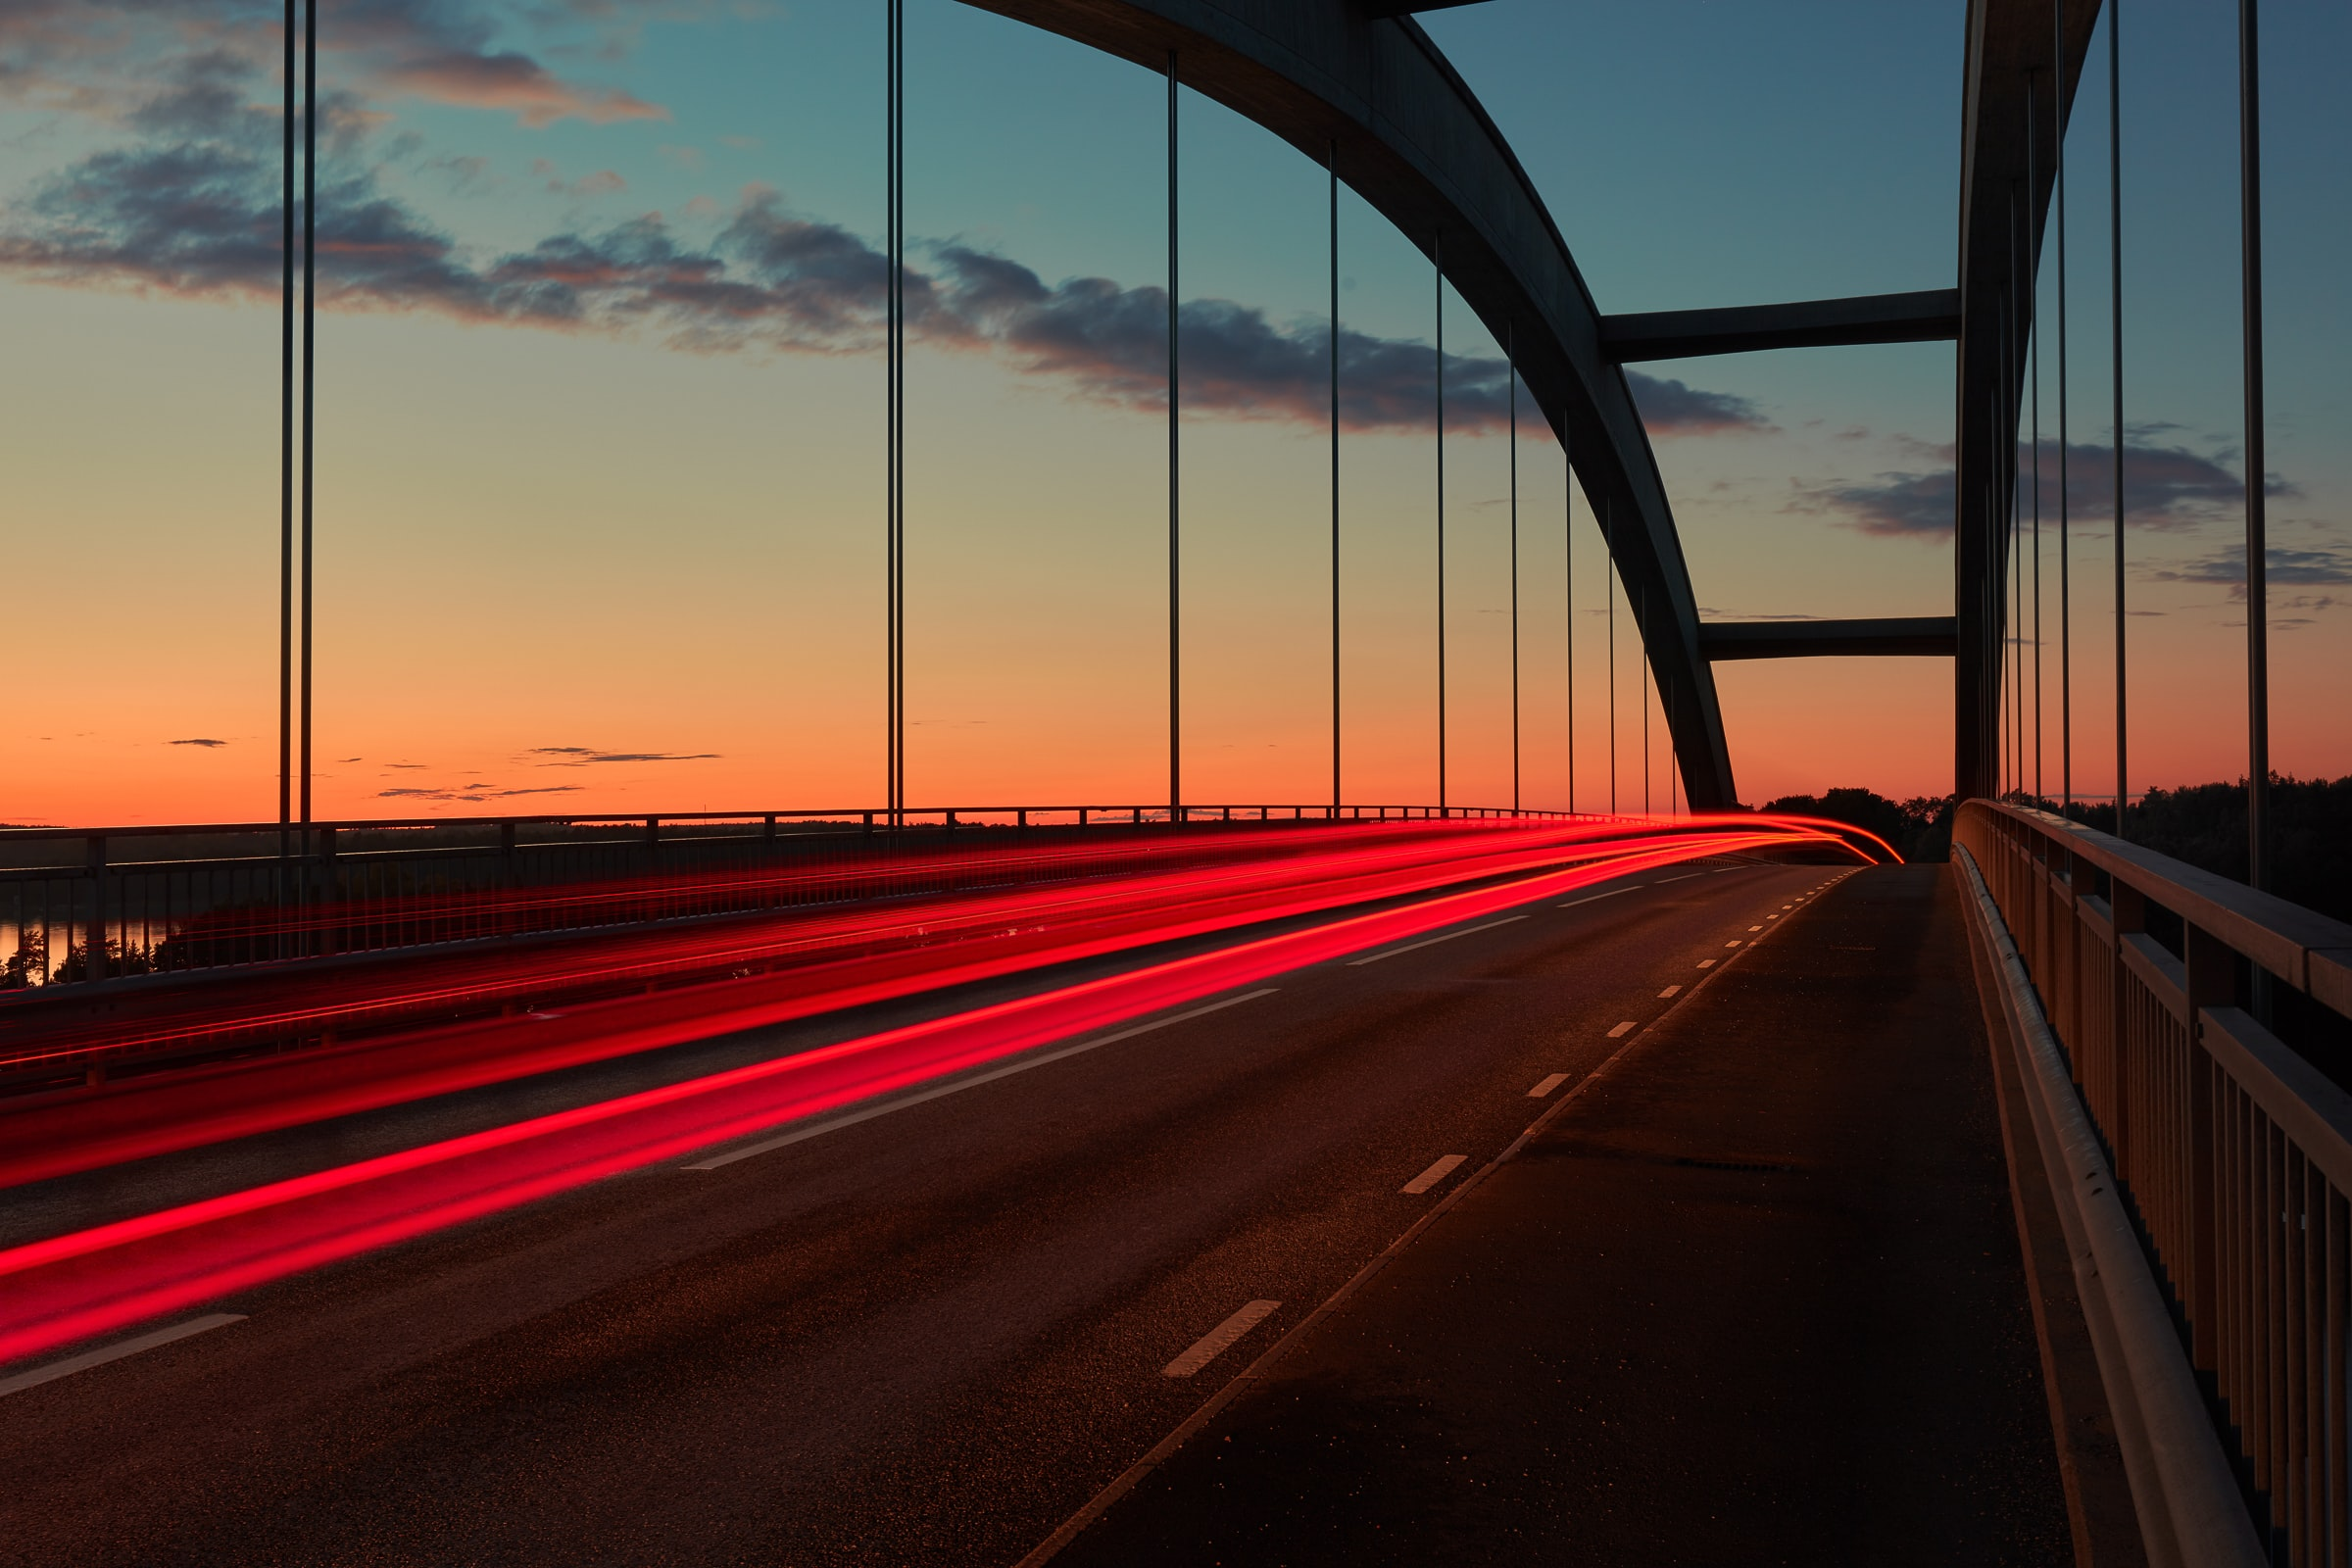 A blurry shot taken at sunrise, featuring a traffic light trail on a bridge in Djuröbron